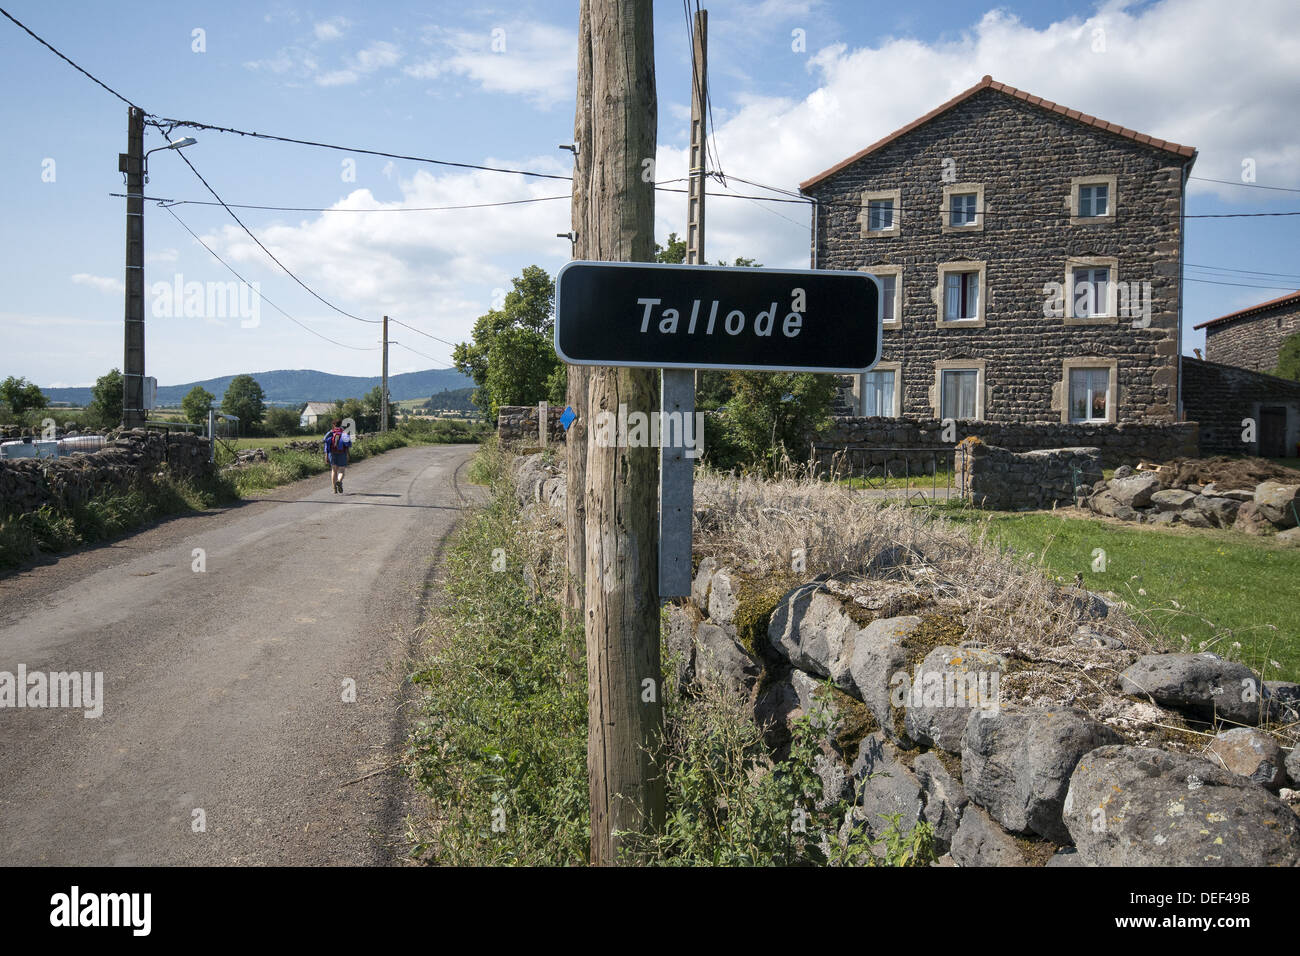 Pilgrim walking through the small village of Tallode on the GR65 walking route the Way of St James in France - Stock Image